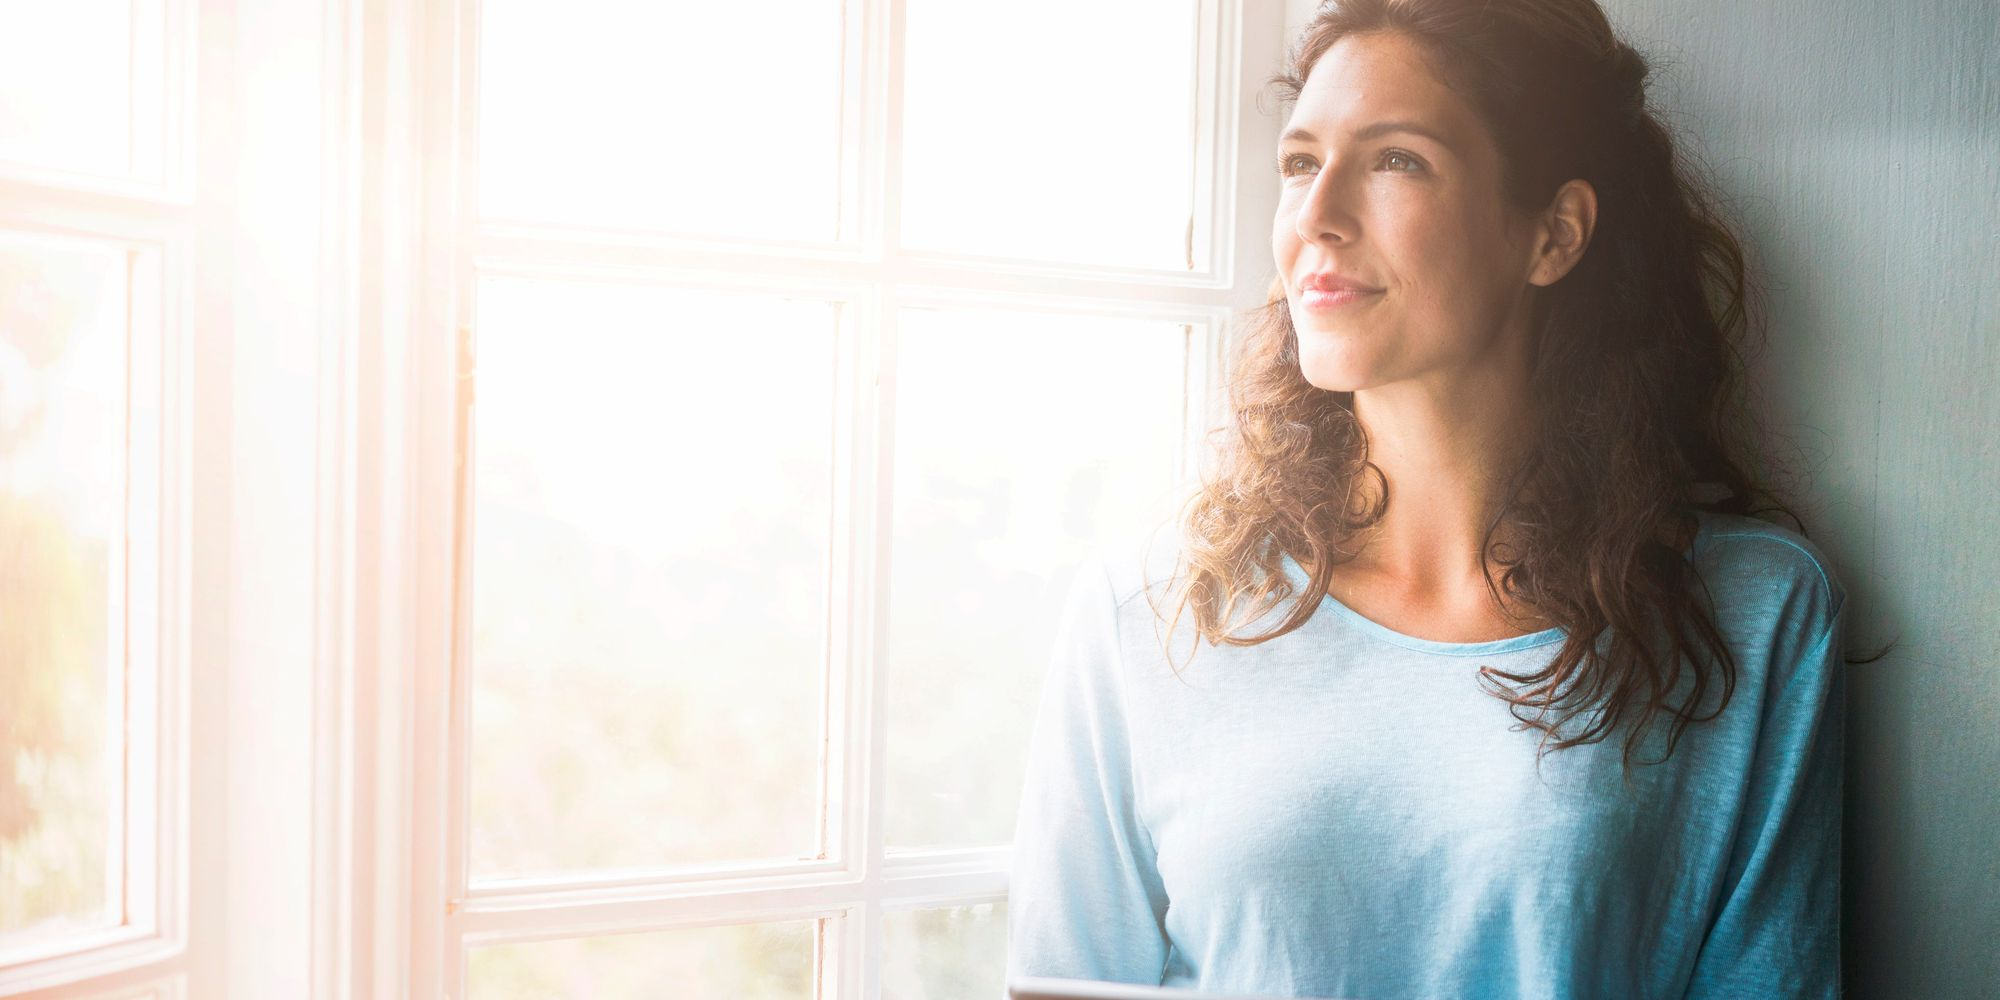 This Simple Mental Shift Can Enrich Everything In Your Life